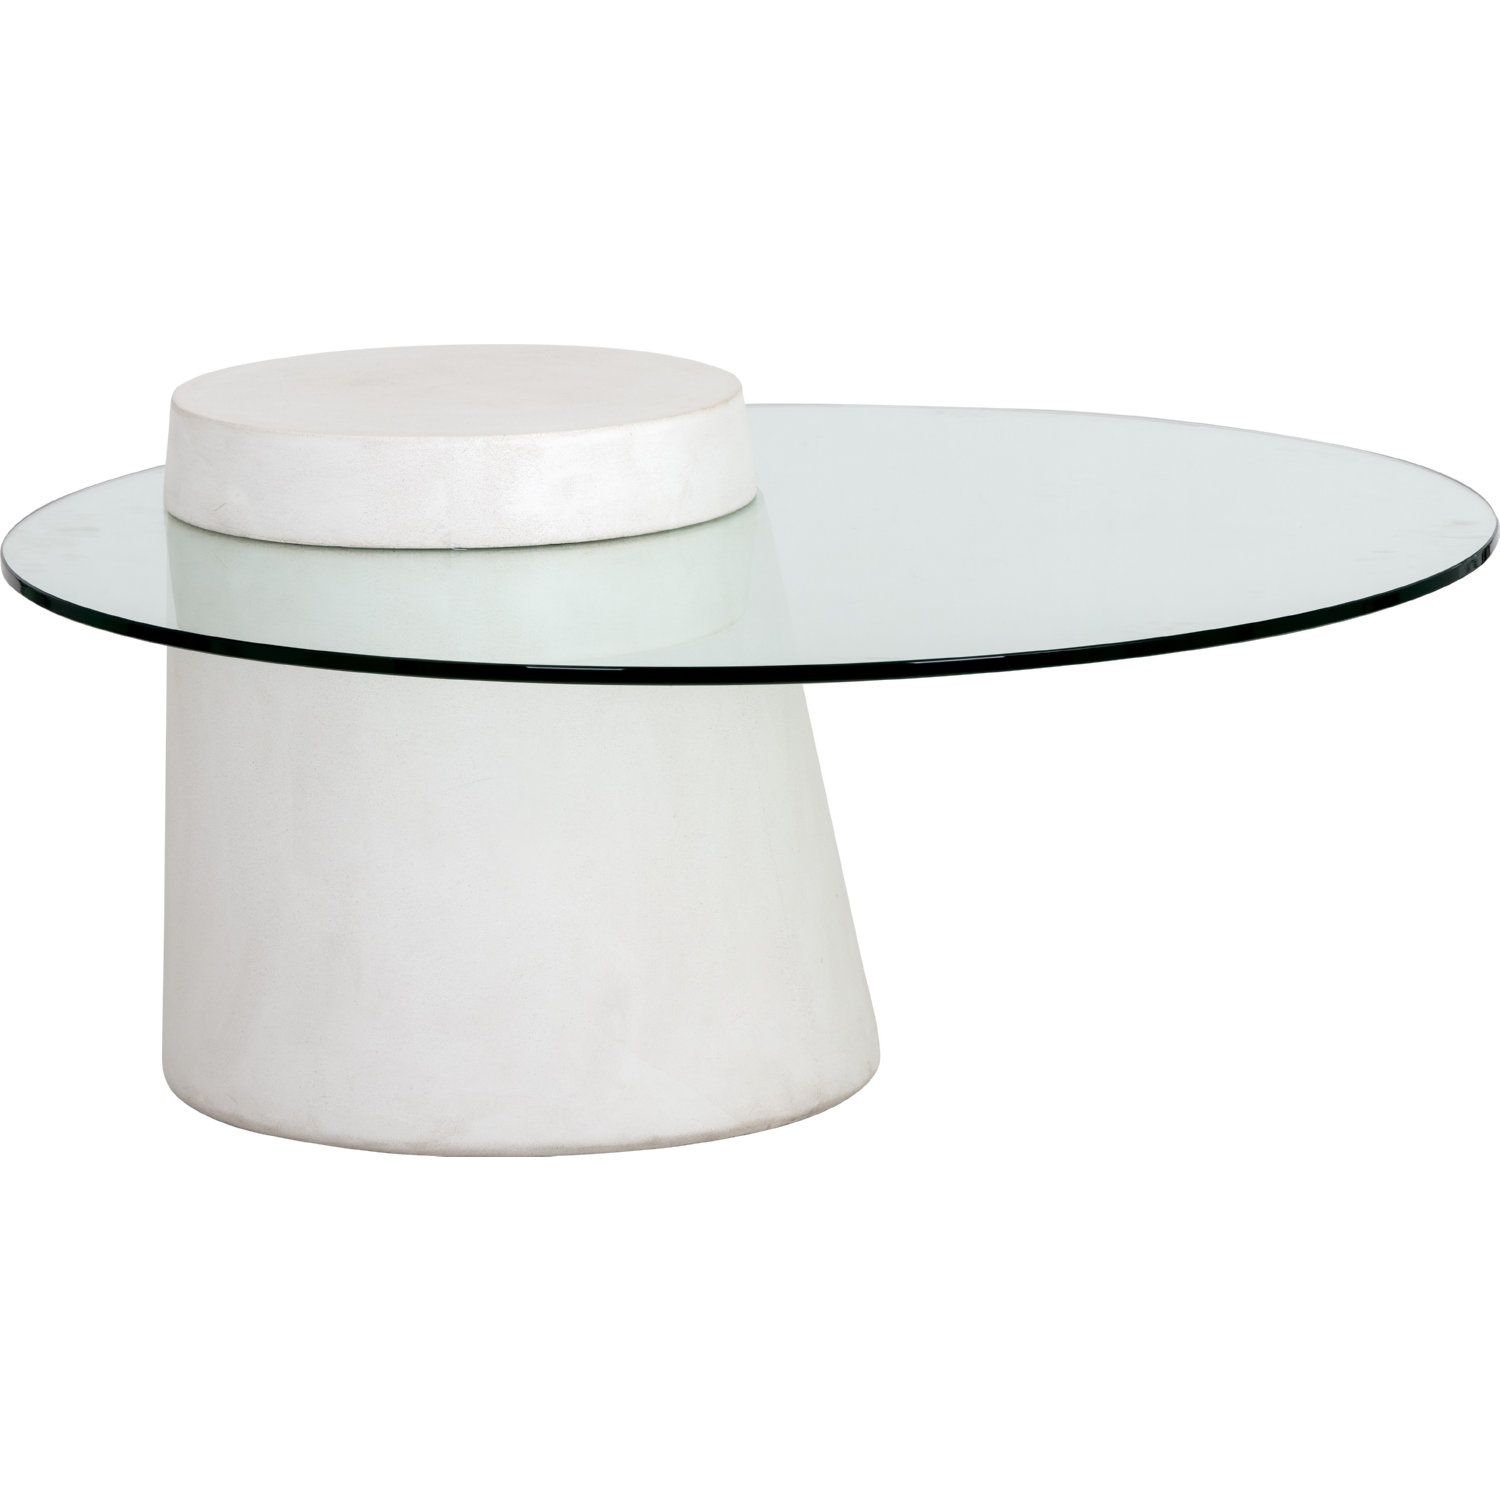 Wondrous Grange Round Coffee Table In Ivory Concrete Tempered Glass By Sunpan Caraccident5 Cool Chair Designs And Ideas Caraccident5Info